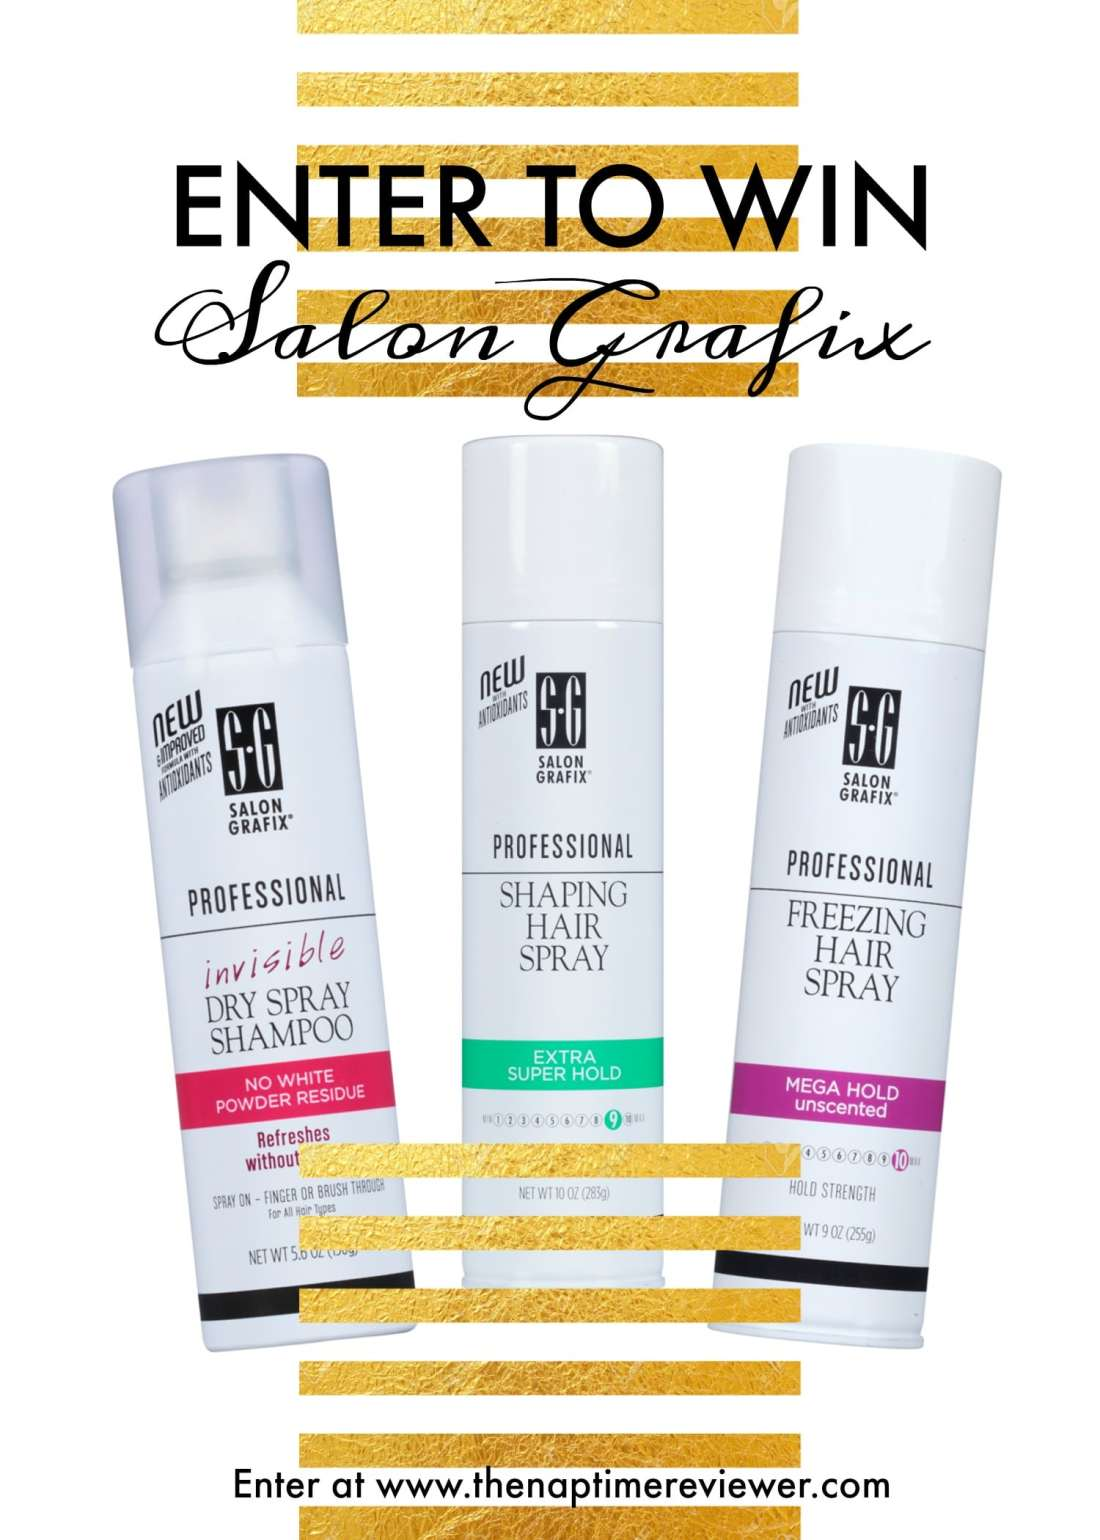 salon grafix giveaway